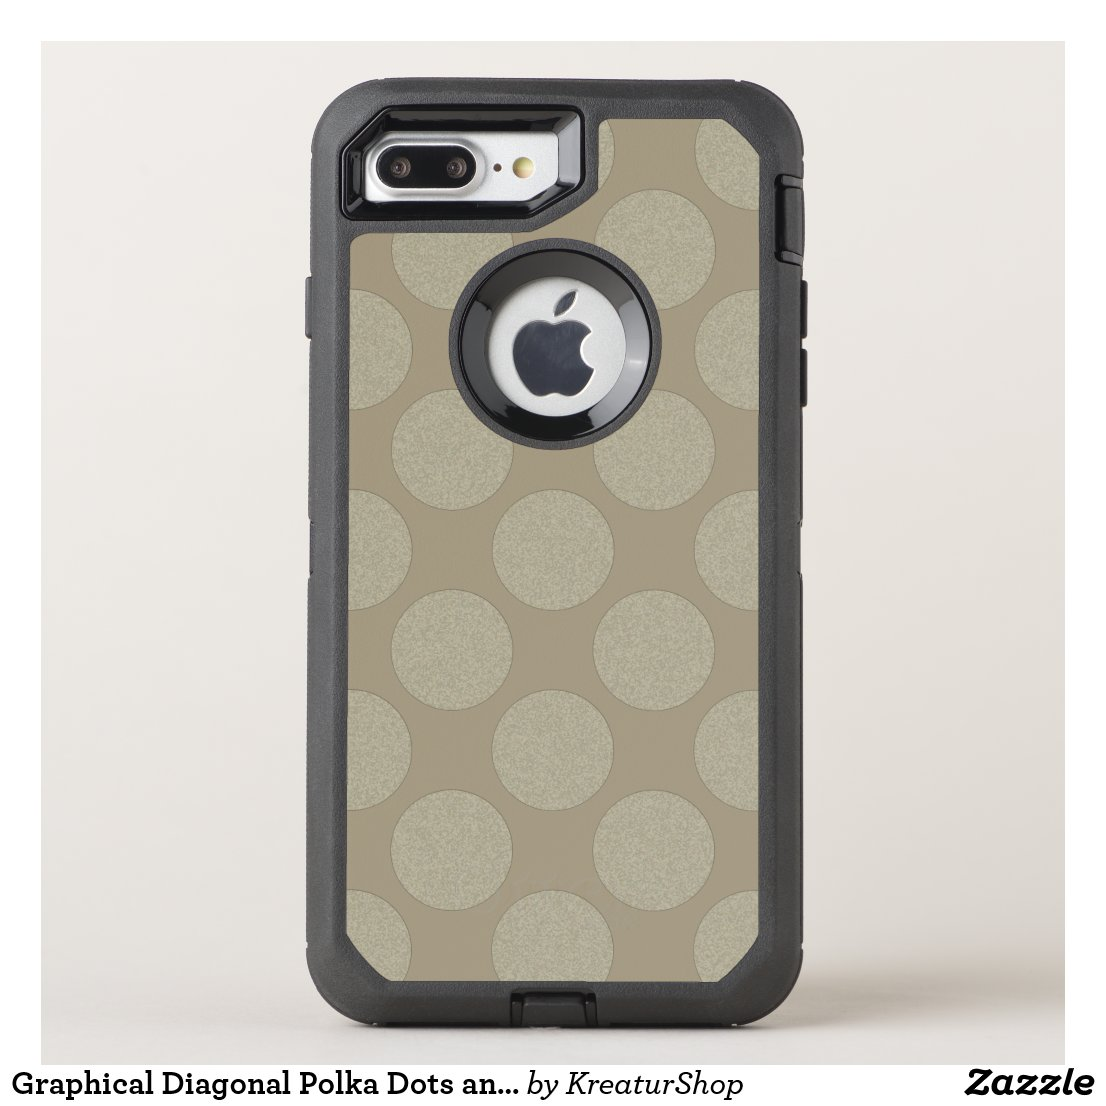 Graphical Diagonal Polka Dots any Color on Latte